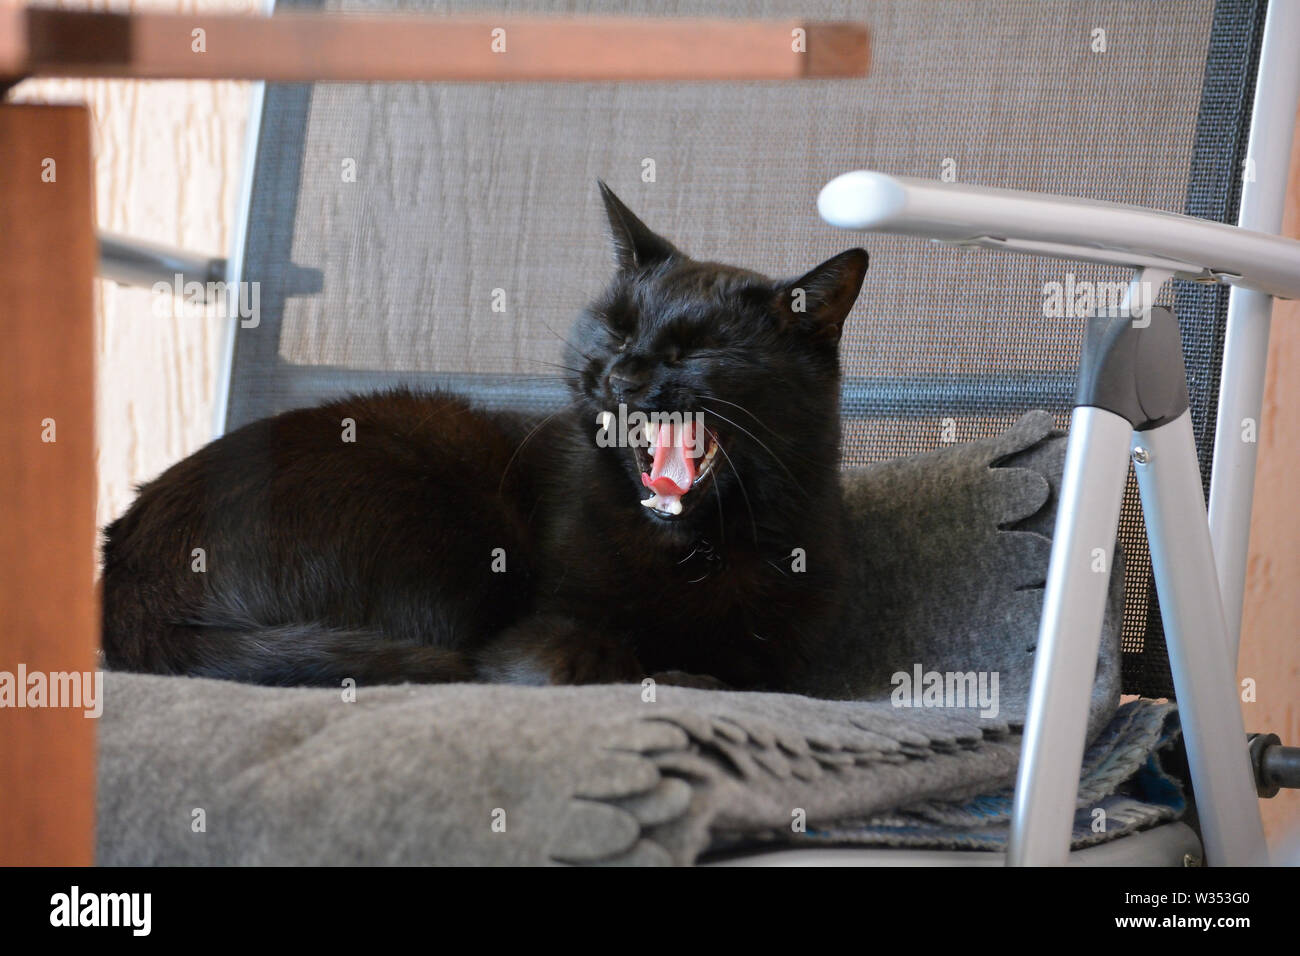 Elegant black cat curled in a garden chair, yawning - Stock Image